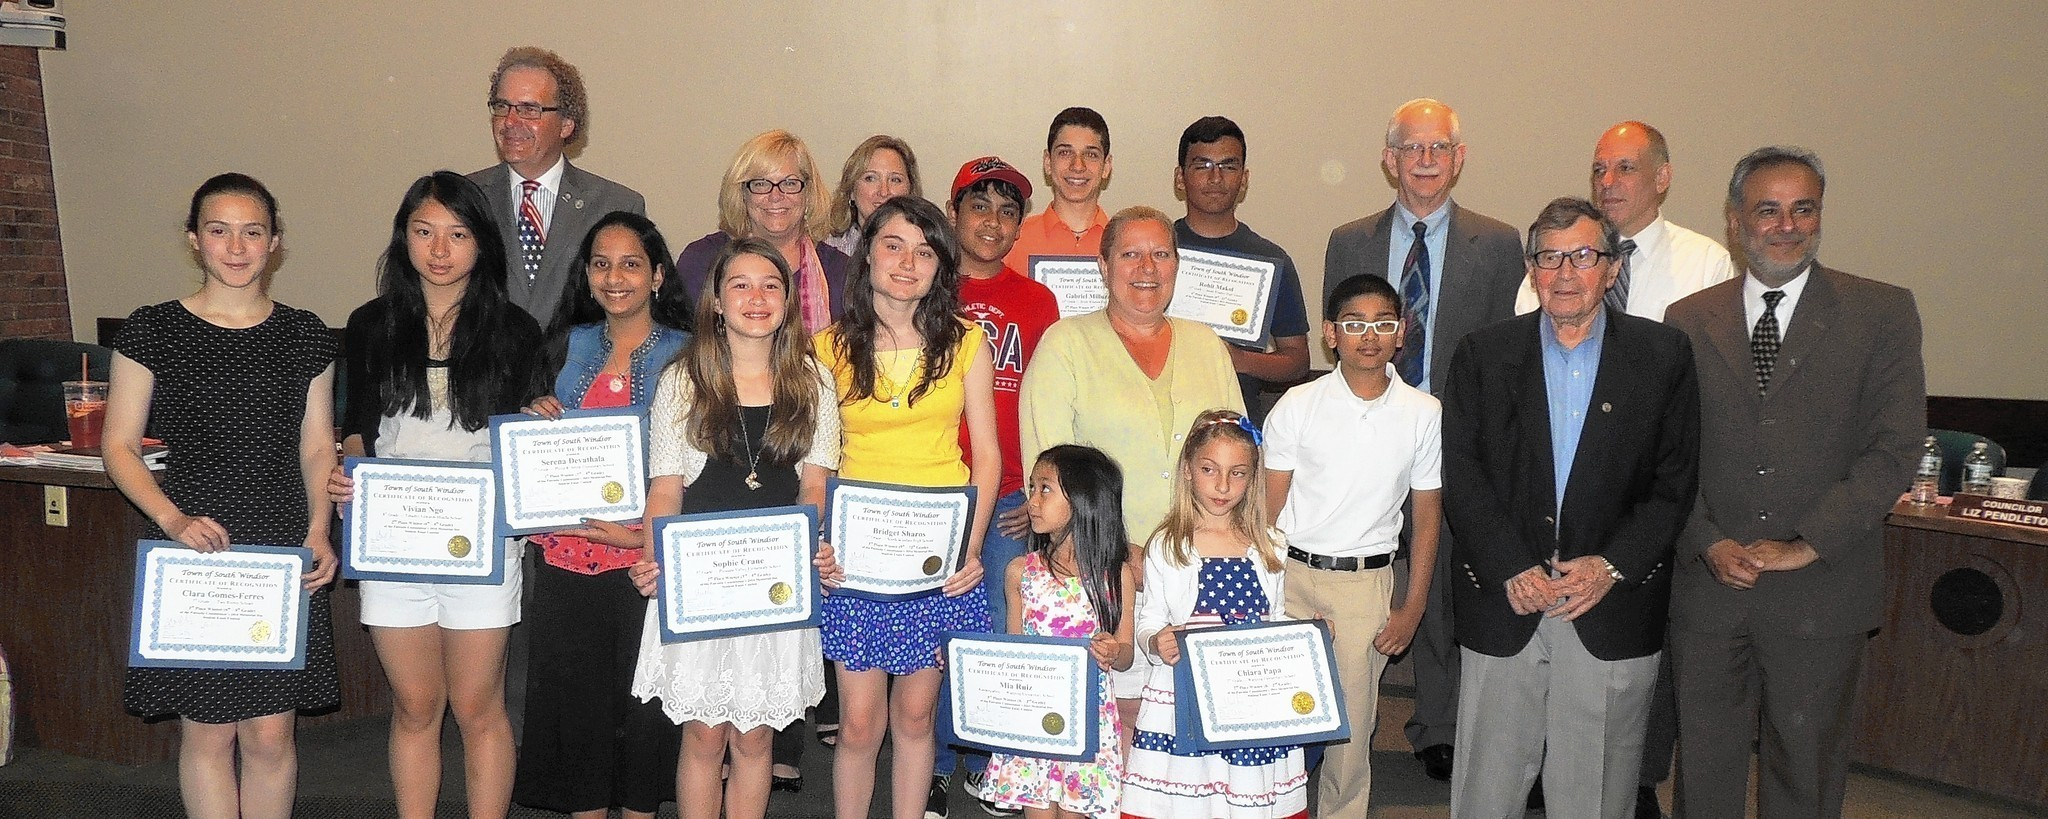 South Windsor Patriotic Commission Announces Winners Of Memorial Day  South Windsor Patriotic Commission Announces Winners Of Memorial Day  Student Essay Contest  Courant Community